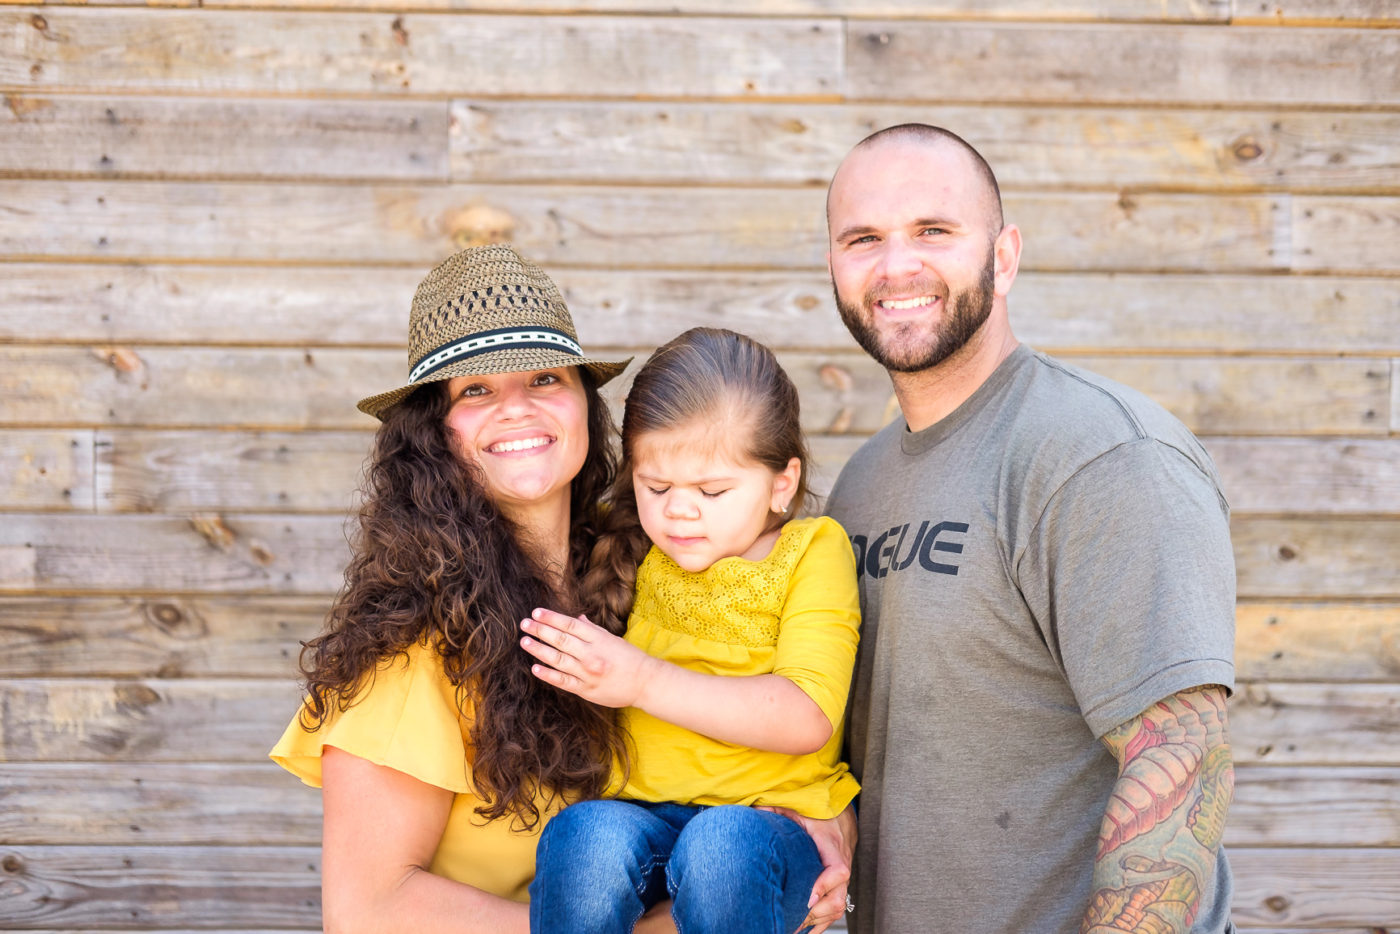 portraits of the jersey shore child with micro deletion disorder -